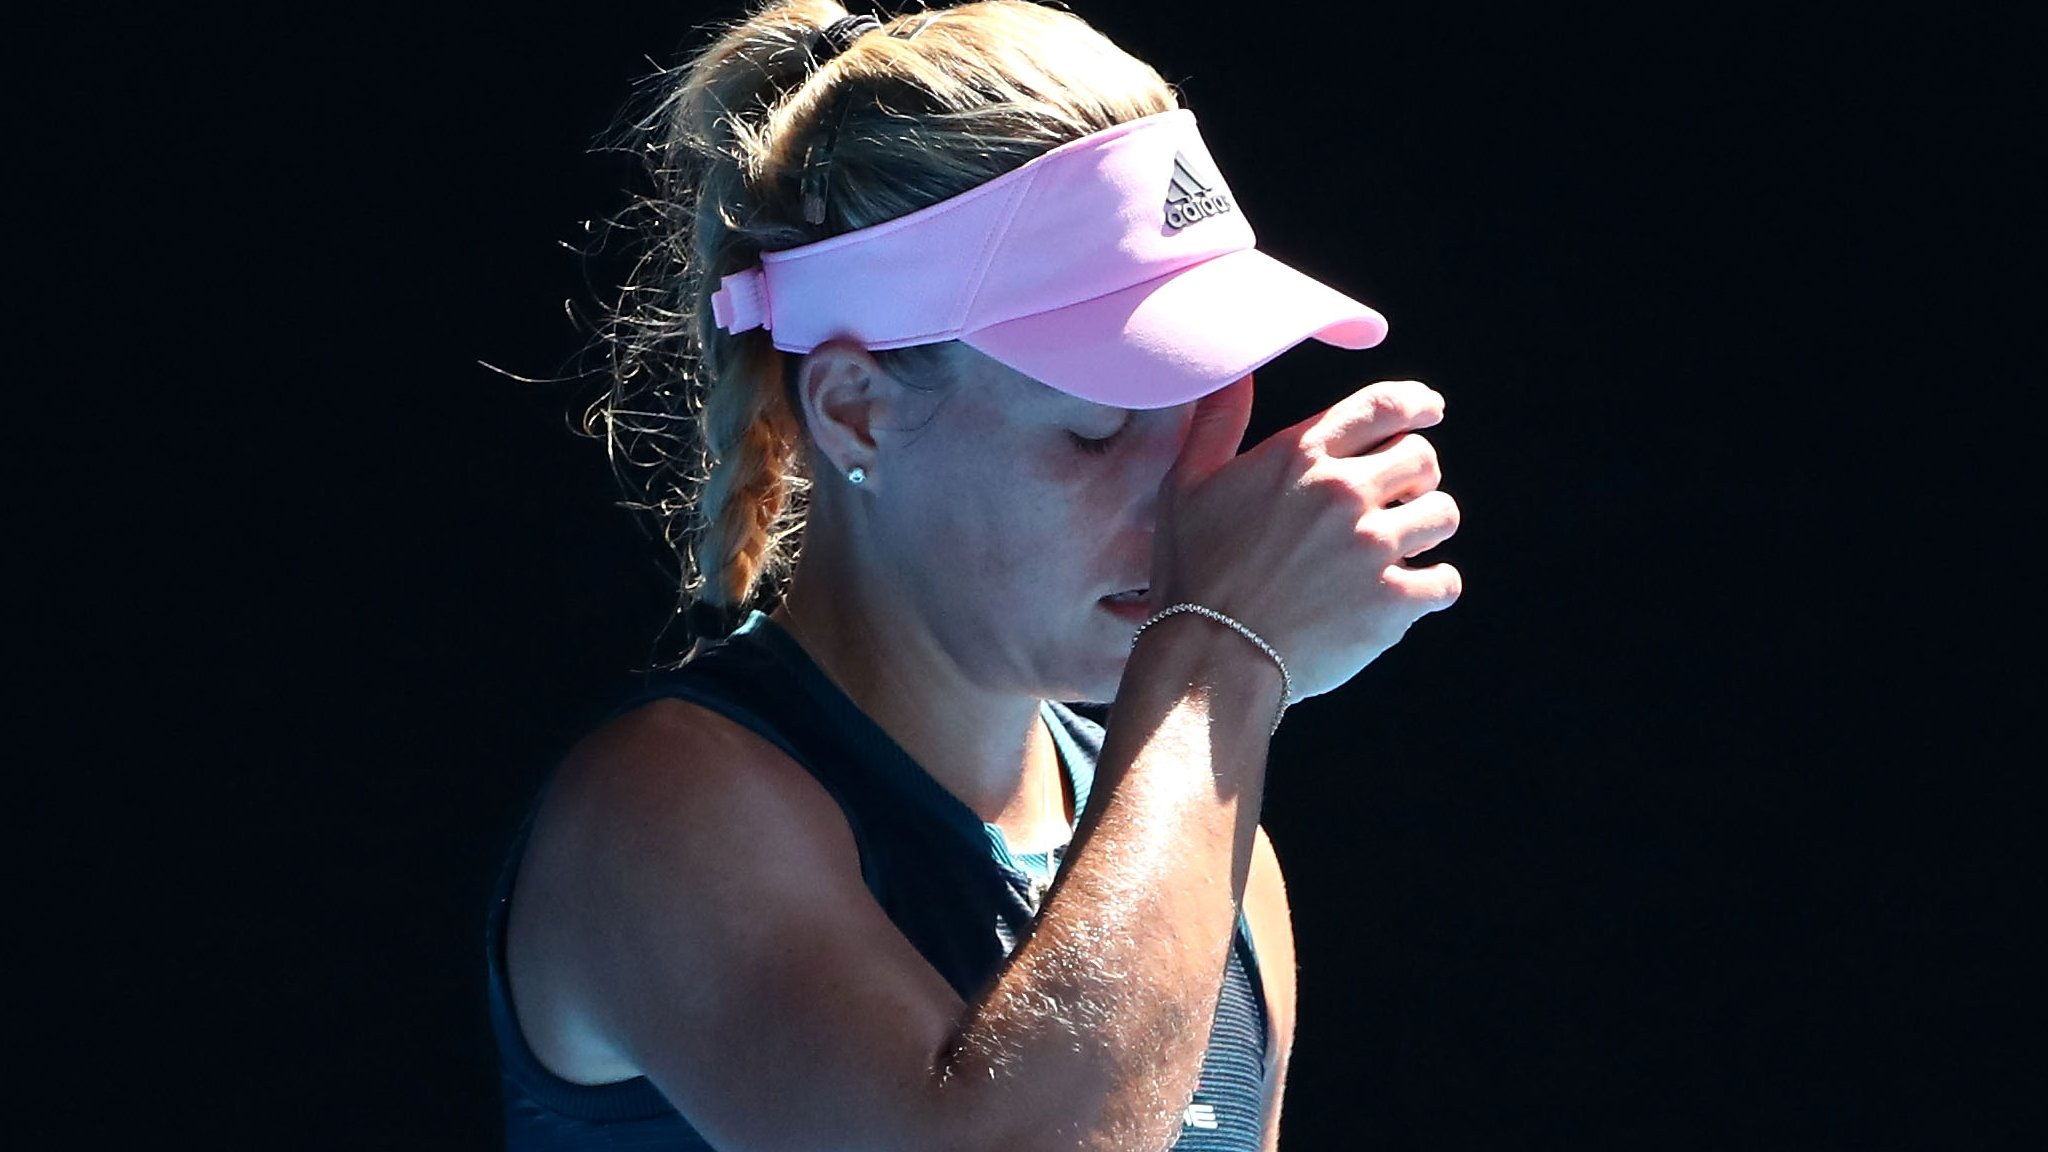 Seeds Kerber & Stephens suffer shock exits